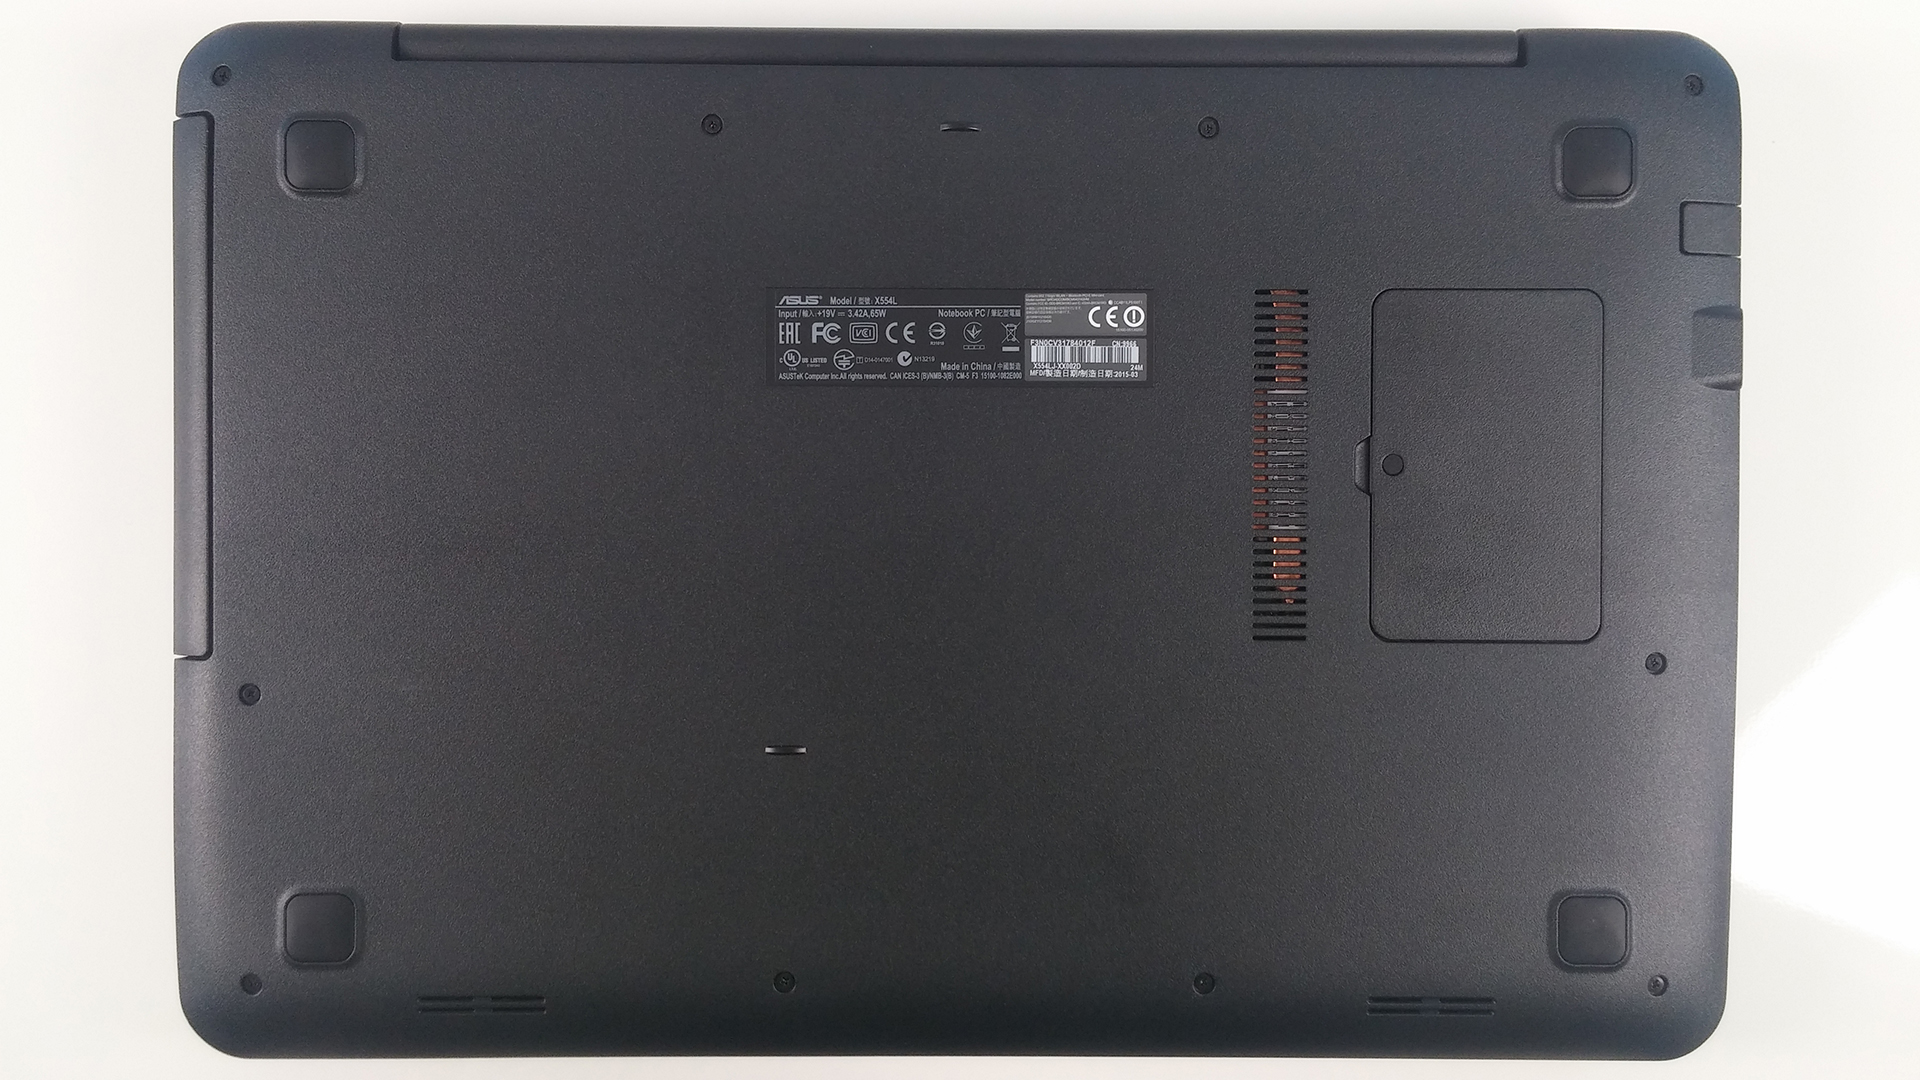 Inside Asus X554l Disassembly Internal Photos And Upgrade Options Diagram Of Computer Parts Laptop 2015 08 10 141549